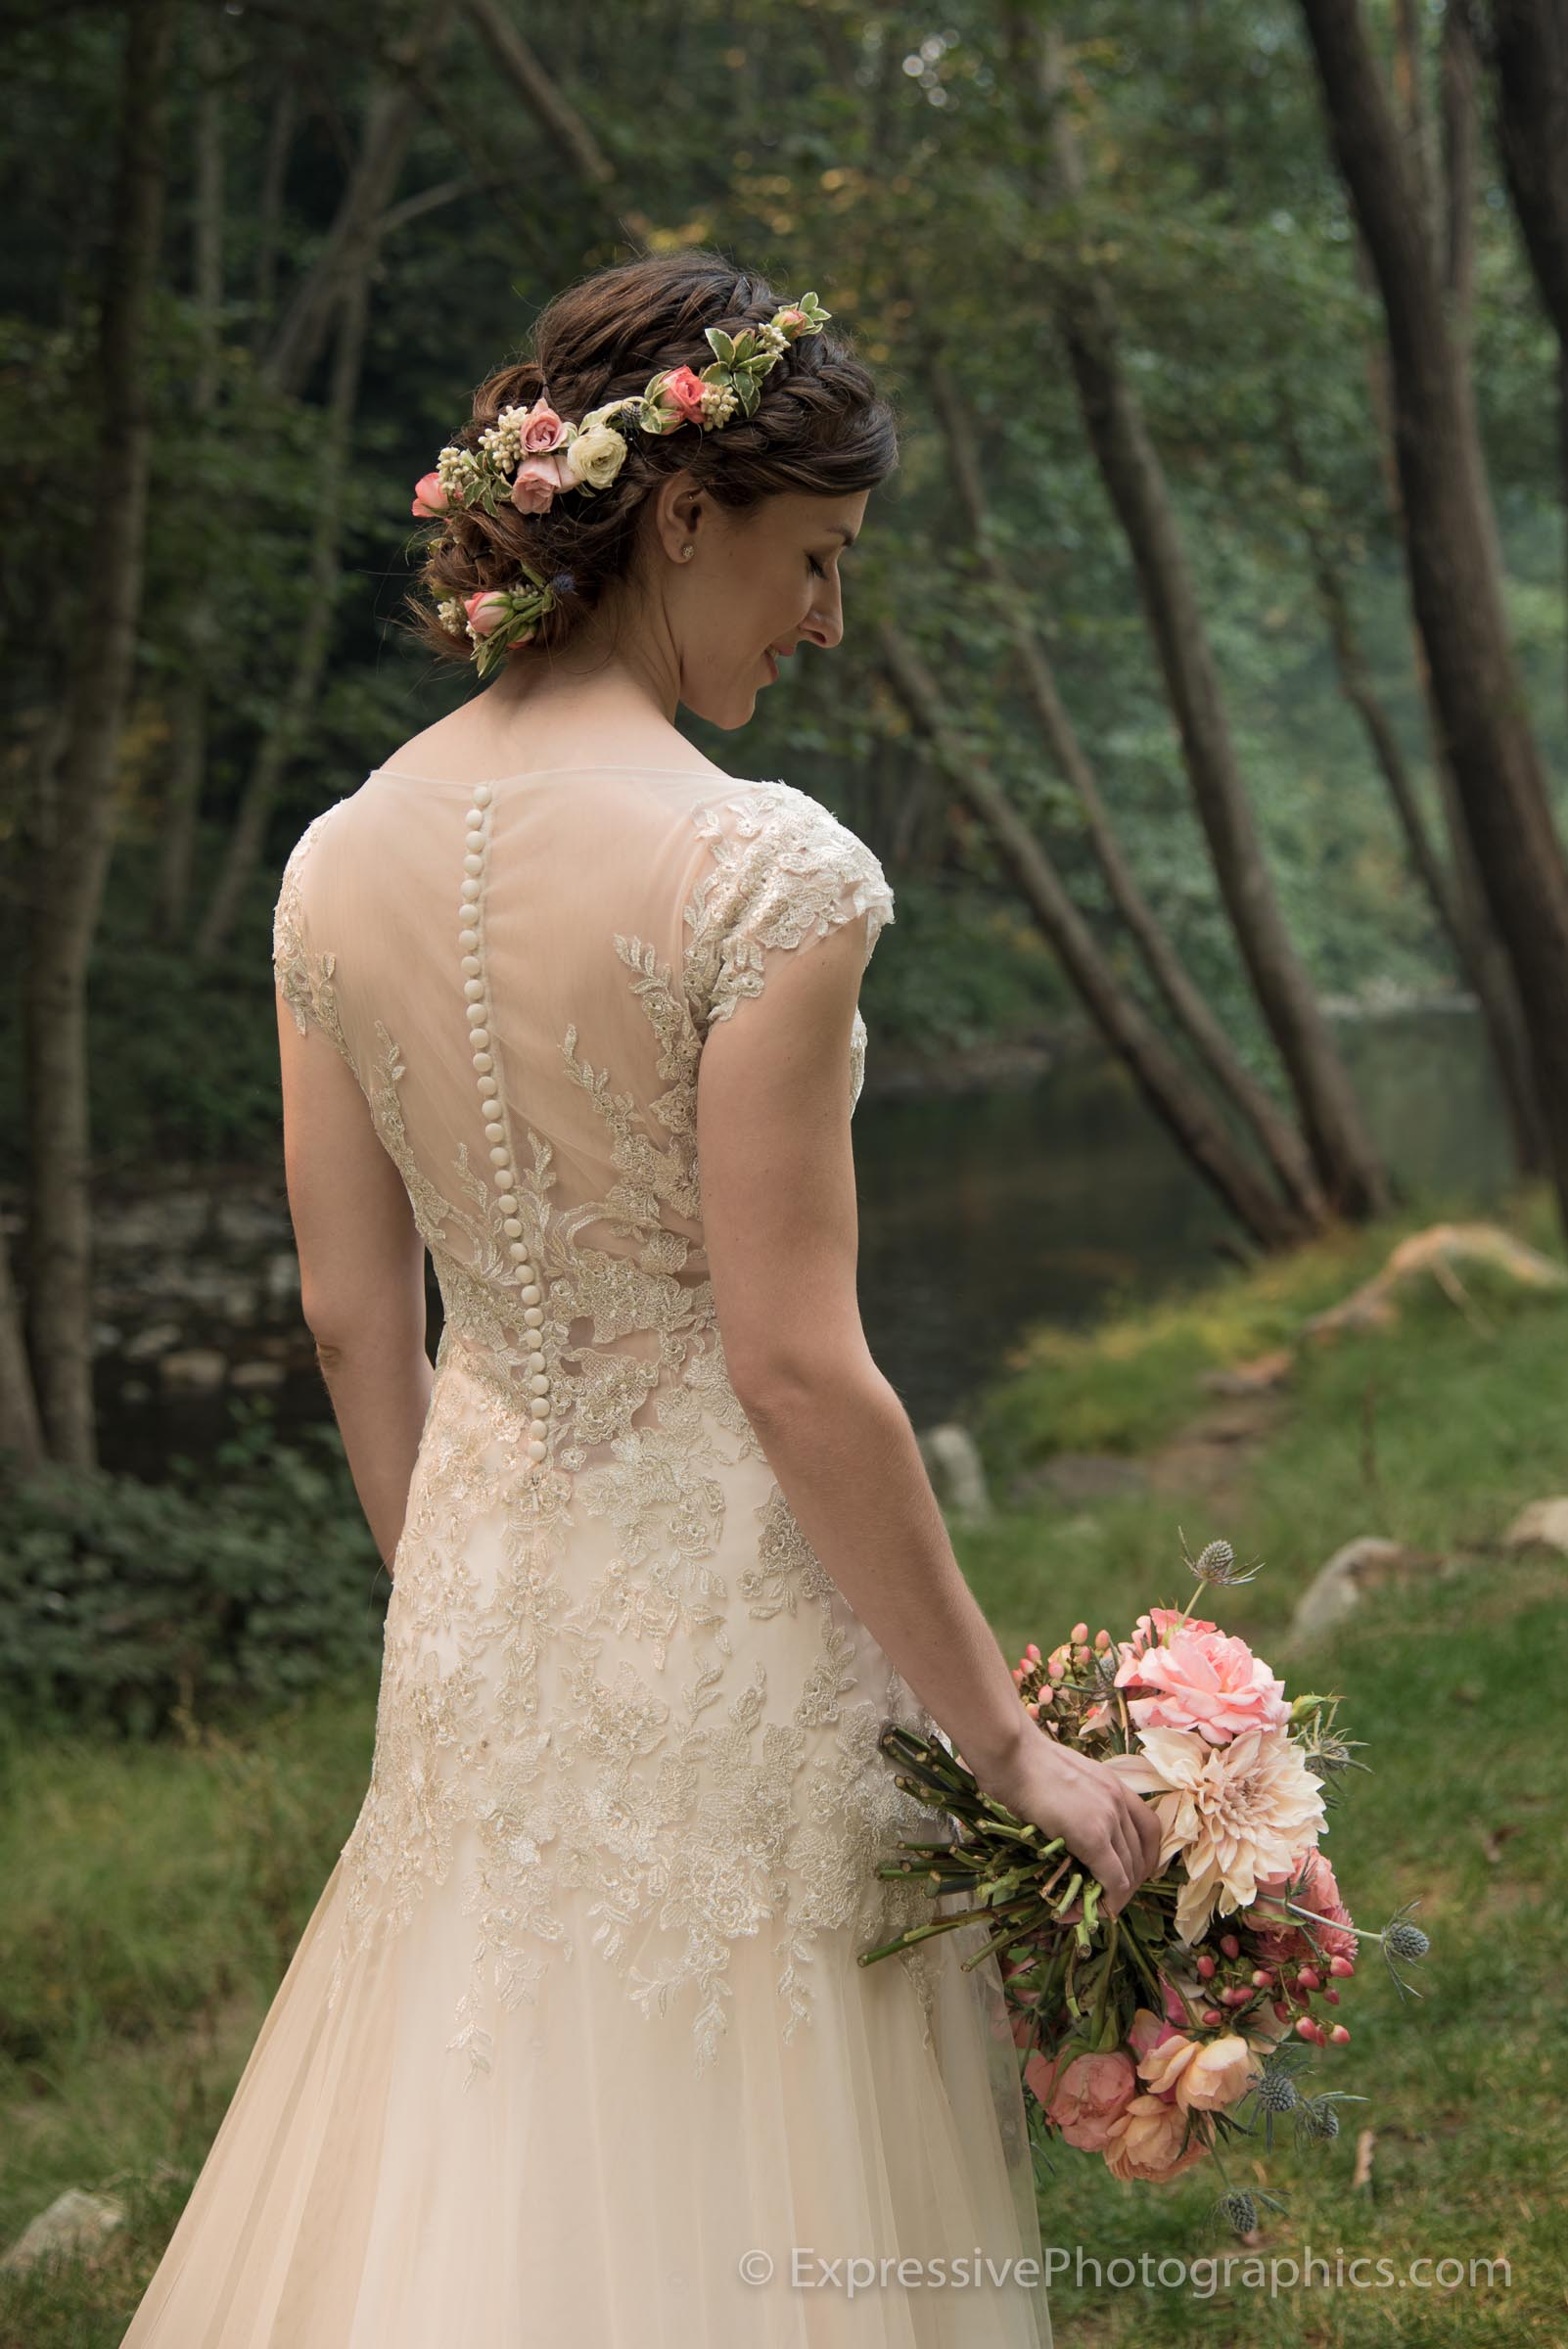 Expressive-Photographics-big-sur-flowers-bride-20160723_0217.jpg